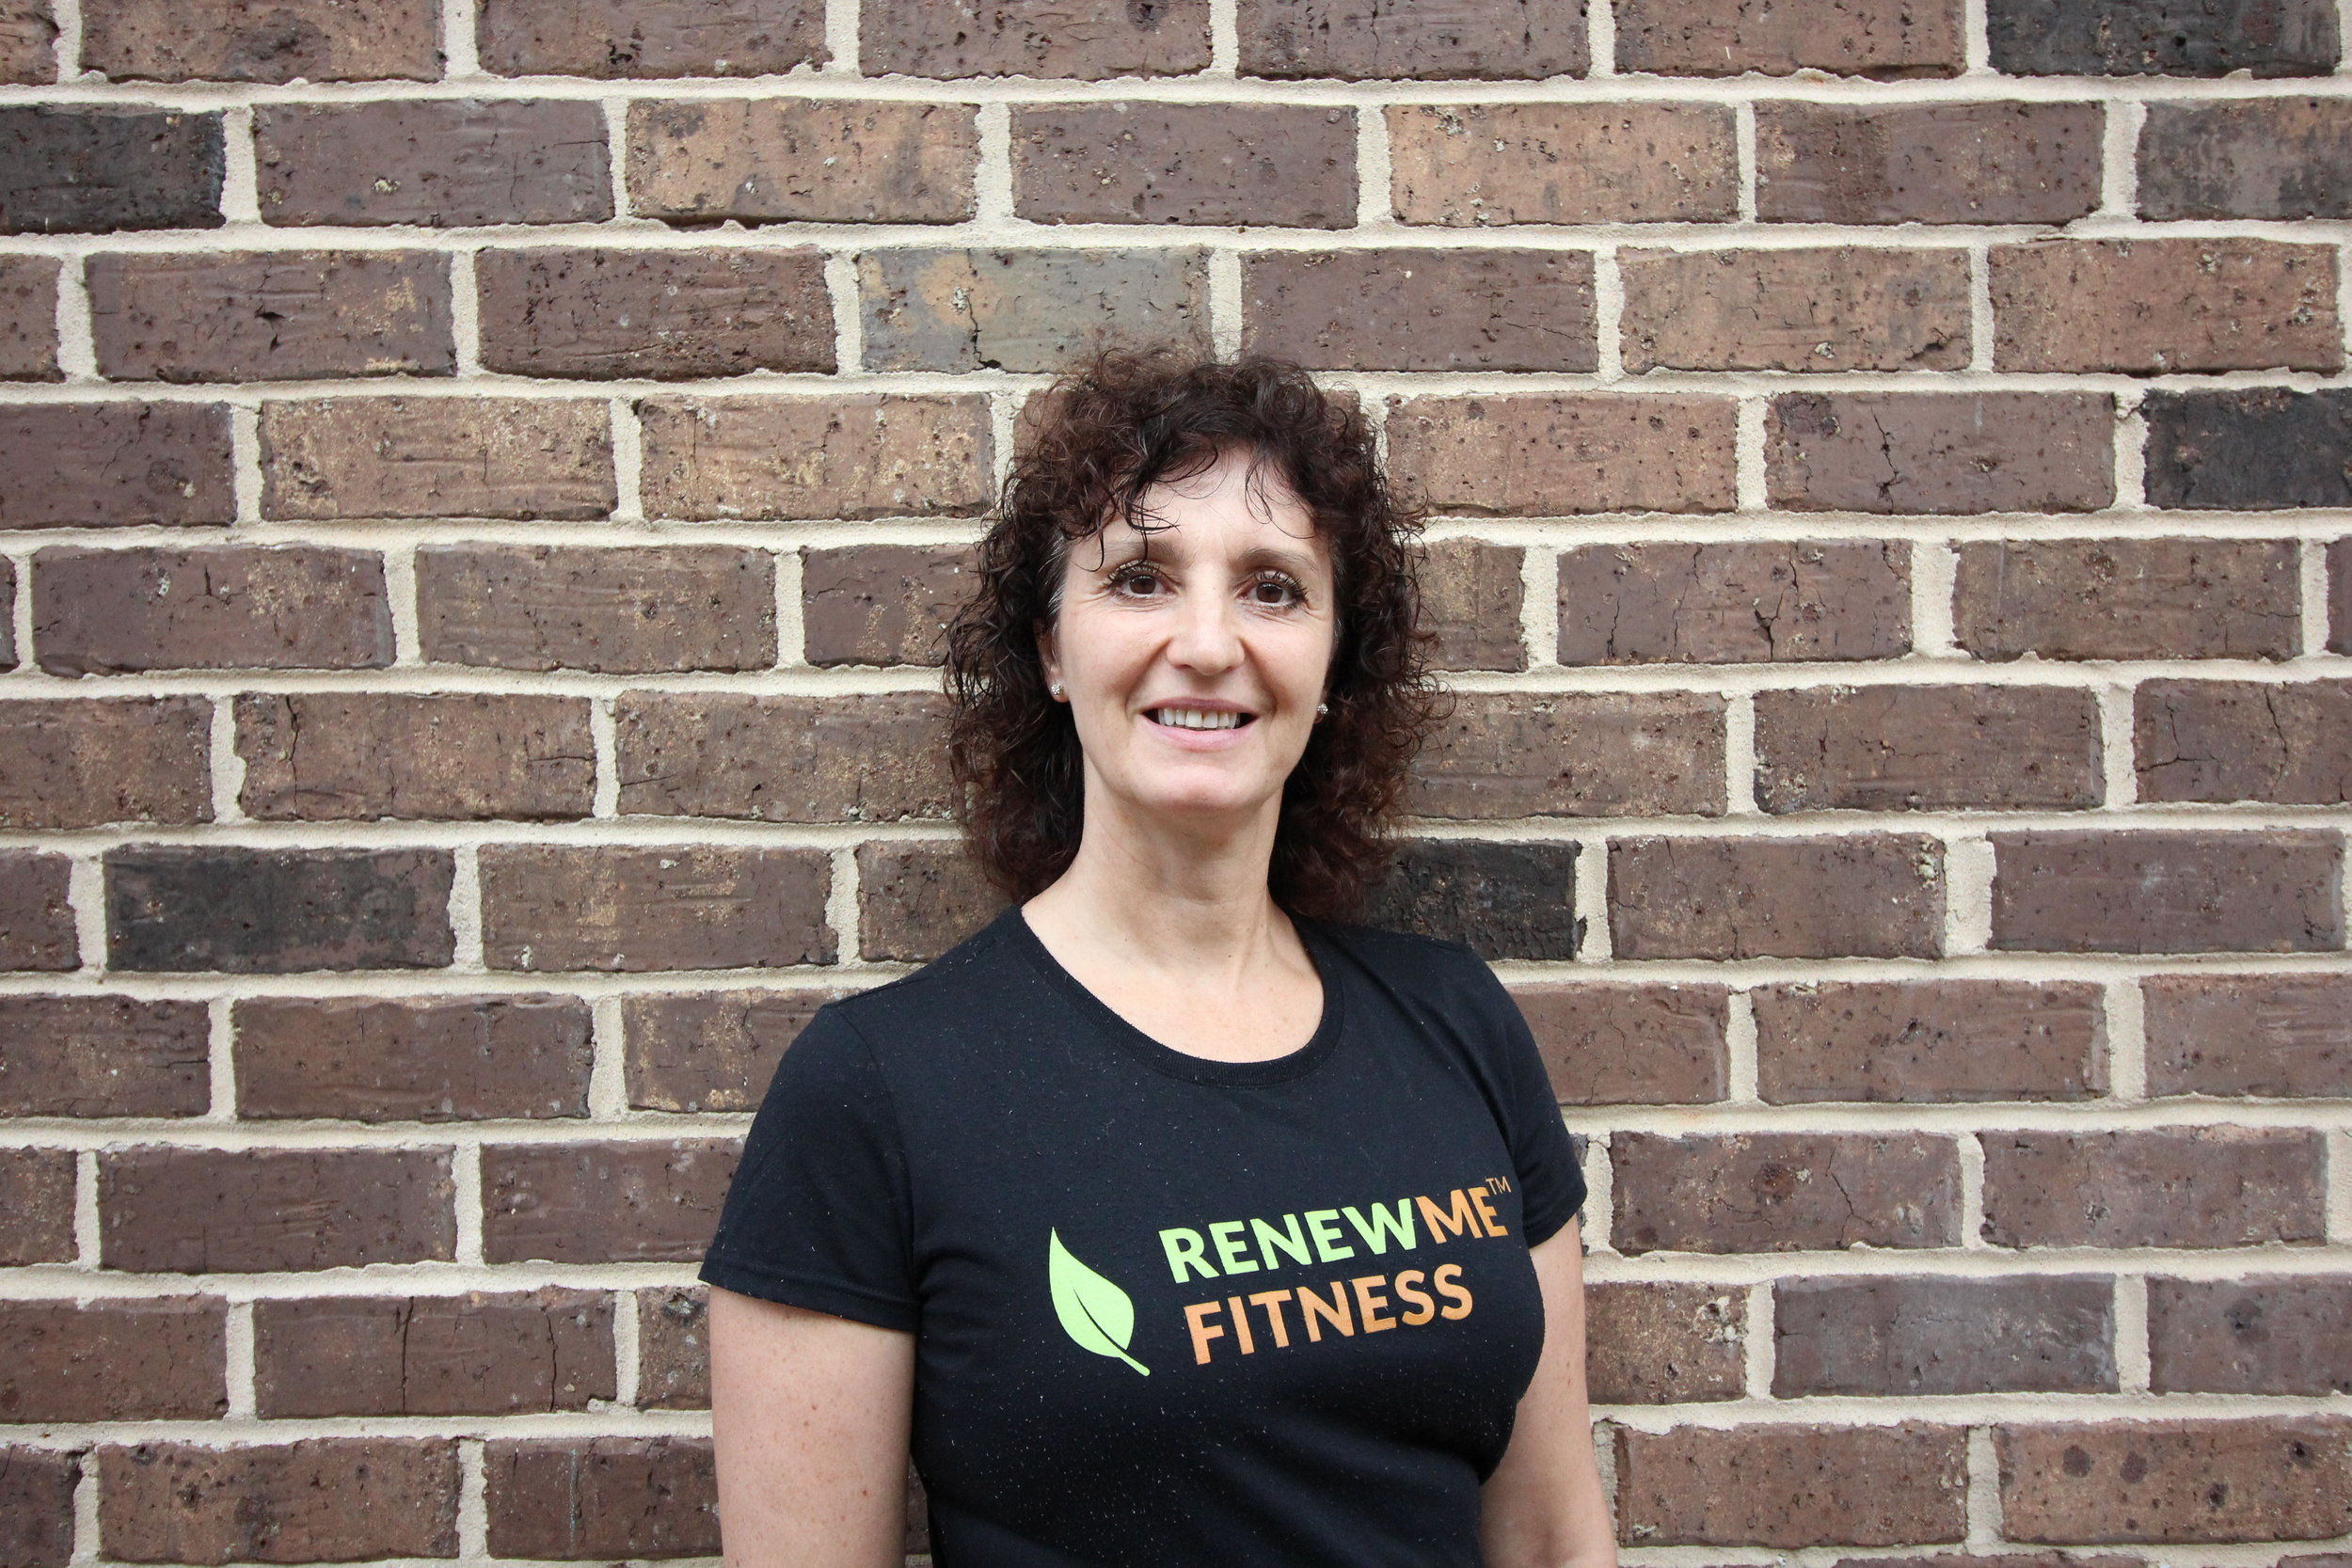 Copy of Andrea, RenewMe Fitness personal trainer